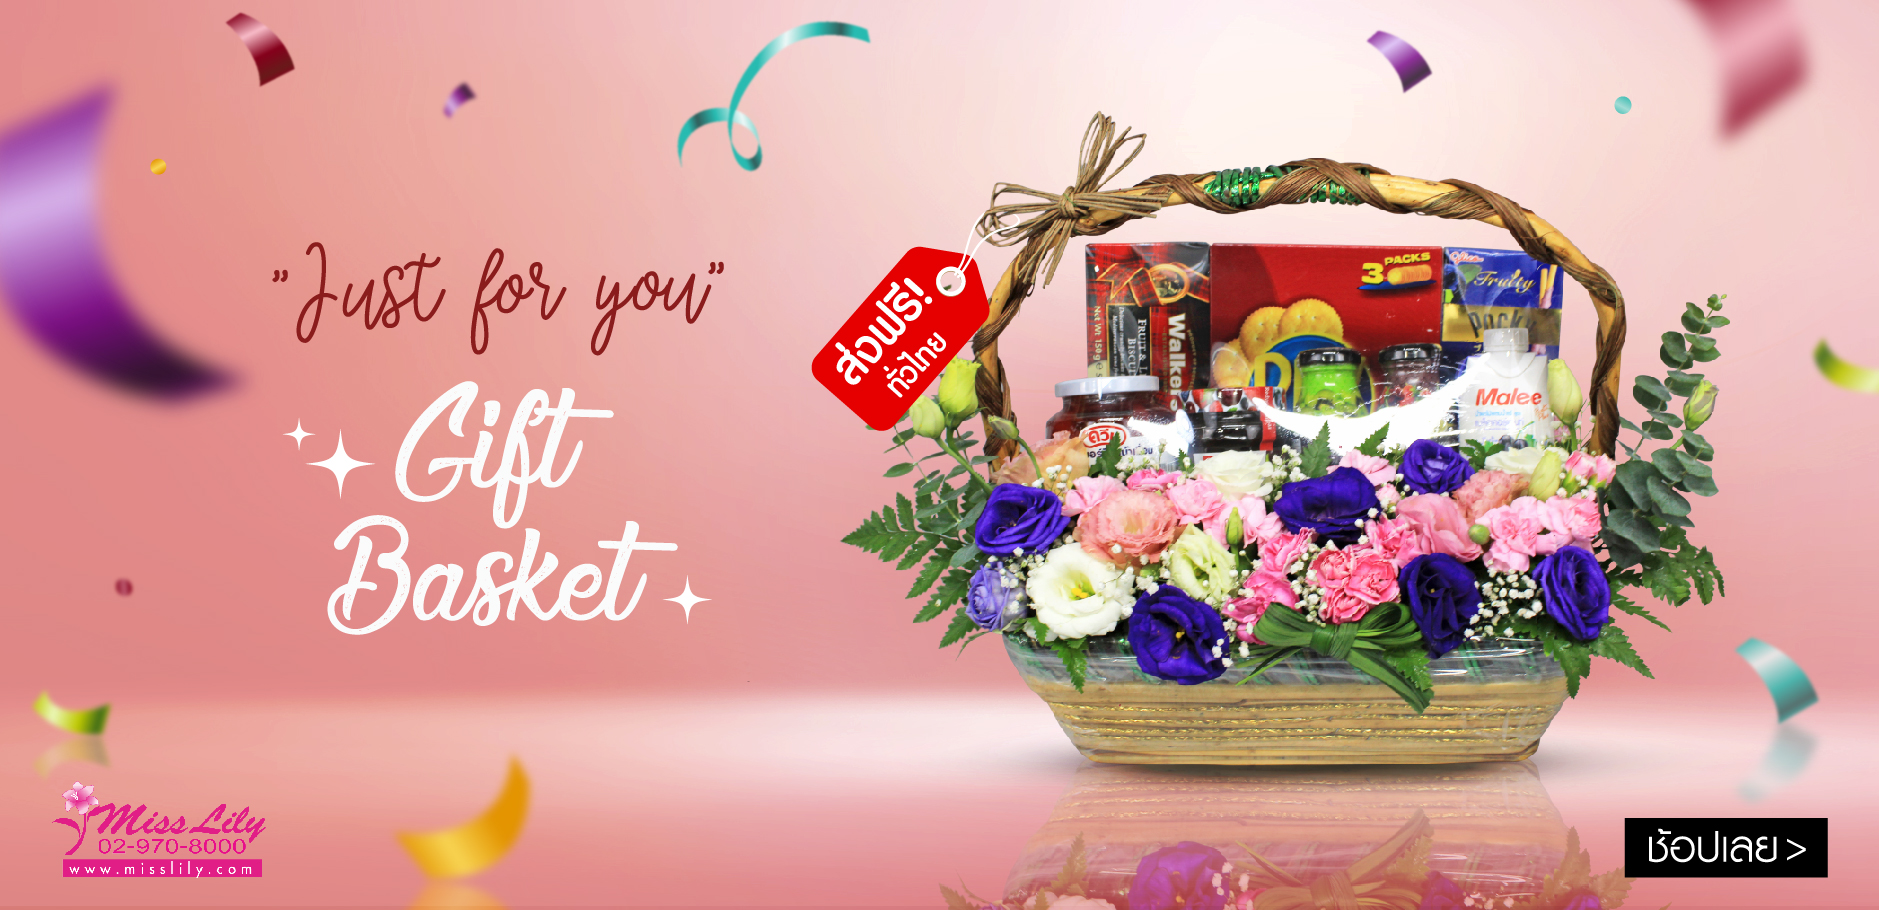 JUST FOR YOU GIFT BASKET TH